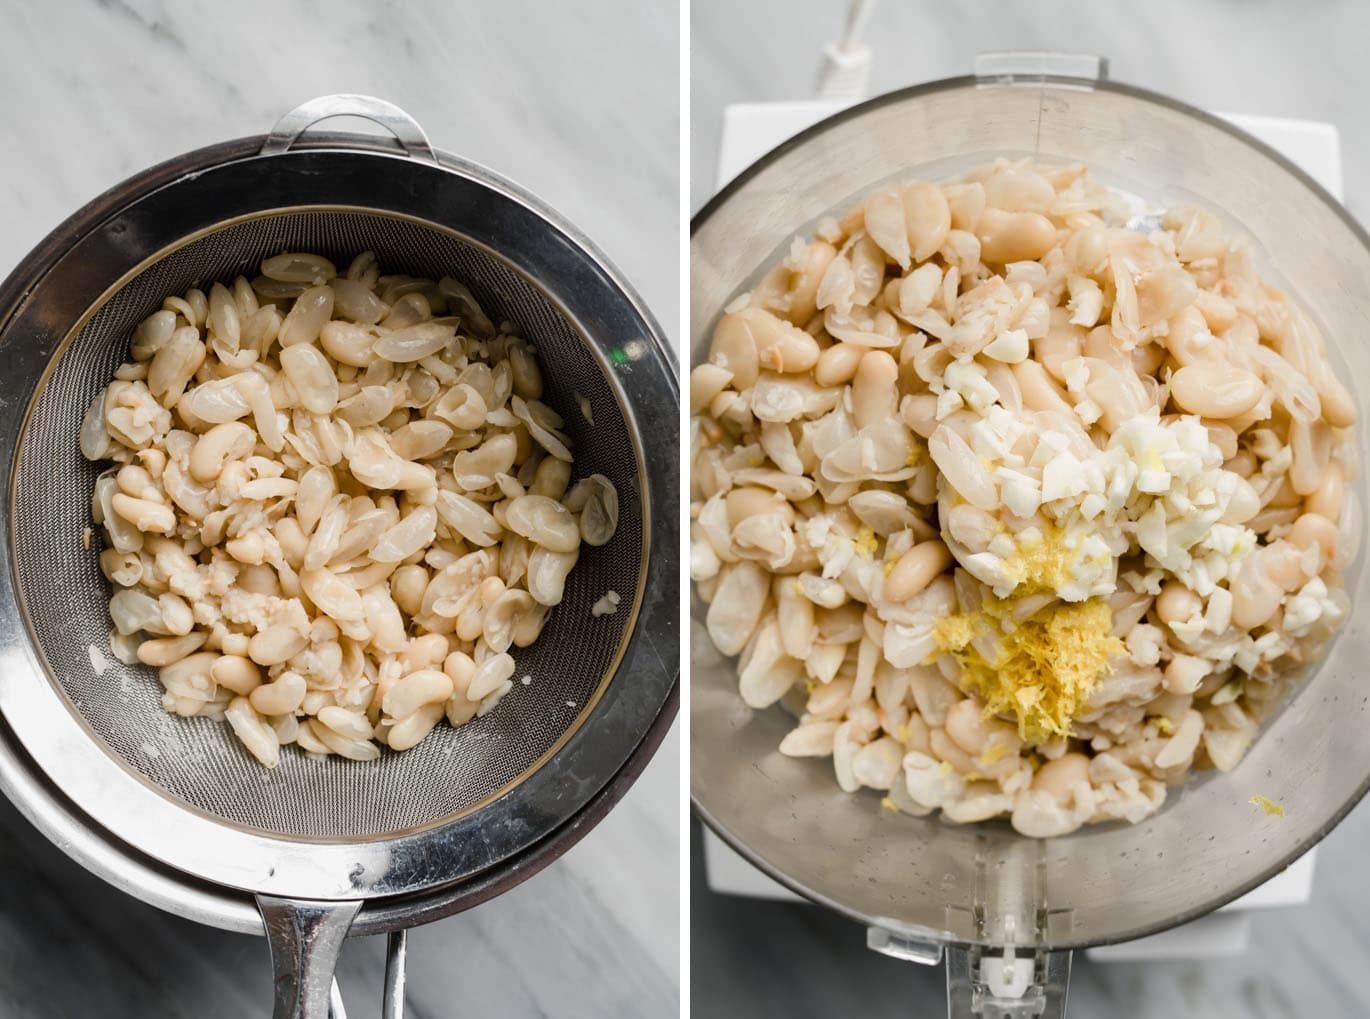 Soft cooked white beans in a strainer over a pot, and cooked white beans with garlic and lemon zest in a food processor.